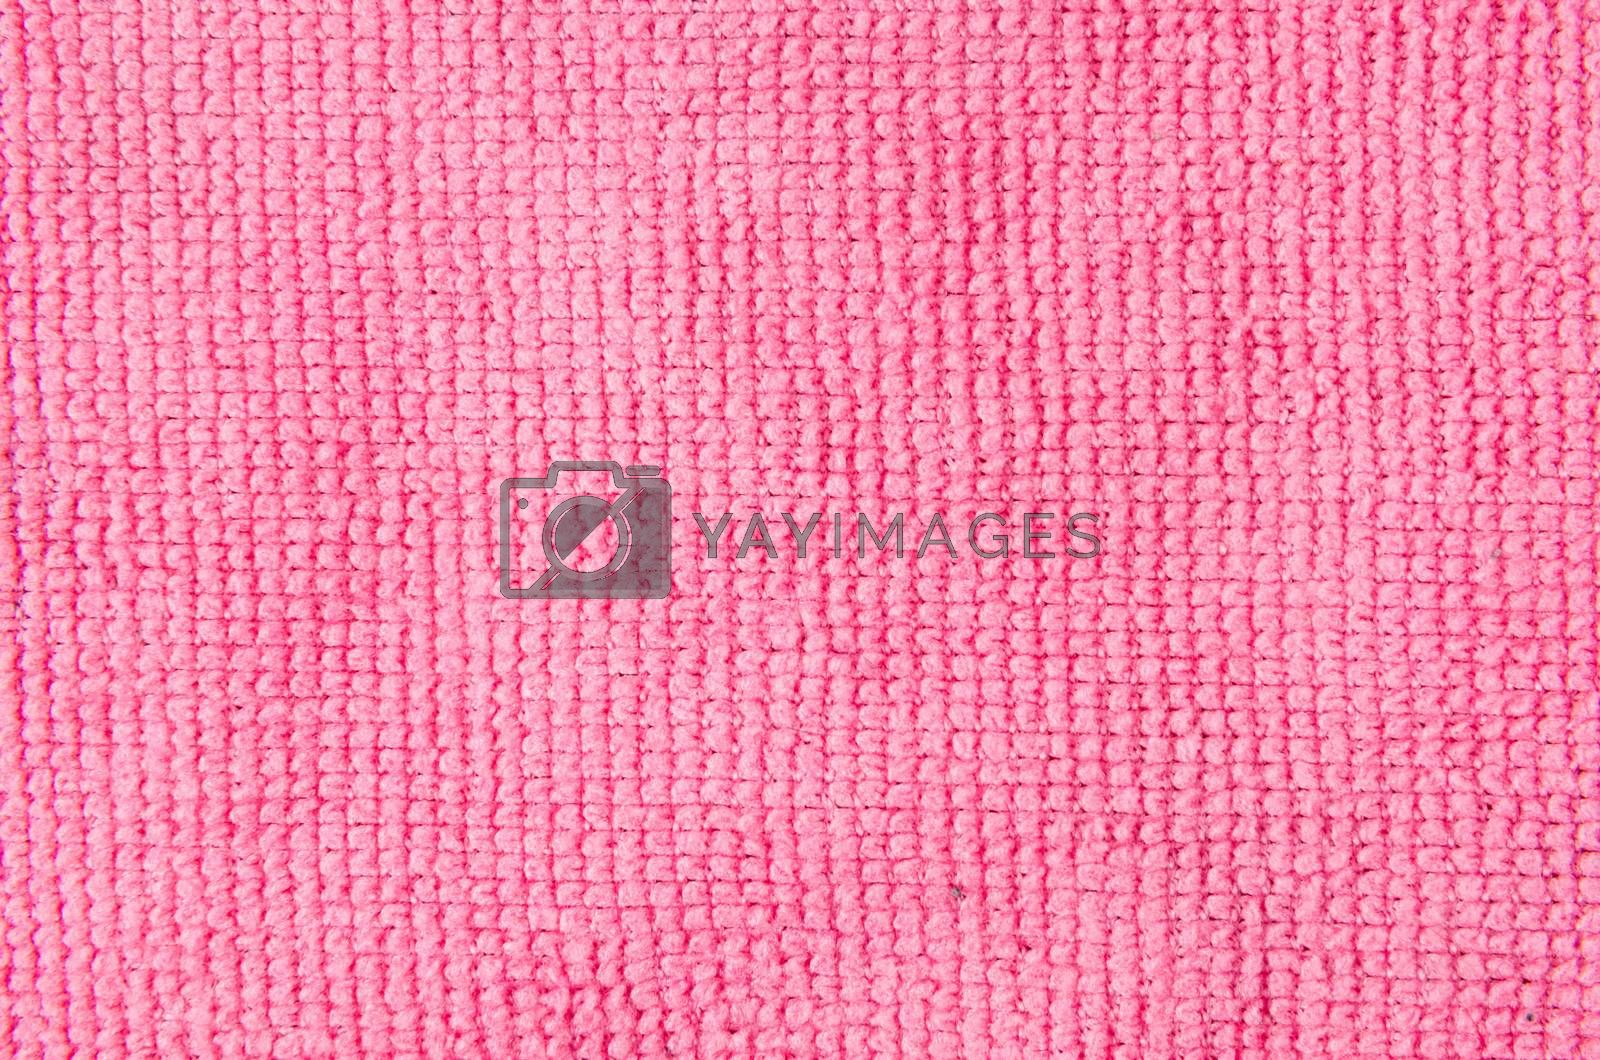 Abstract fabric textured closeup as a background